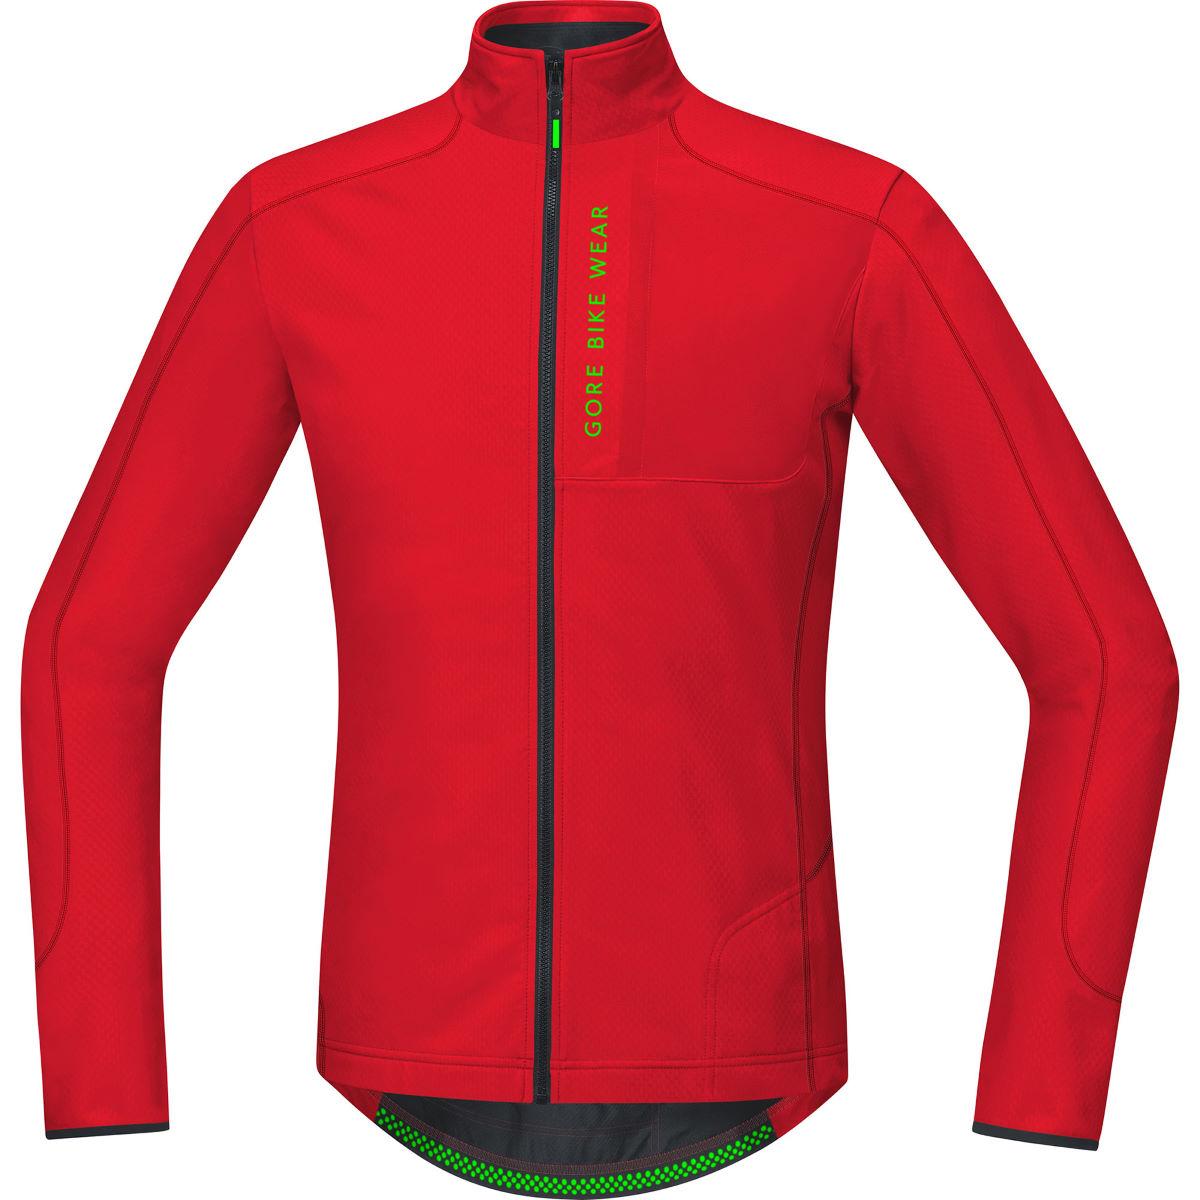 Maillot de manga larga Gore Bike Wear Power Trail Thermo - Maillots de manga larga